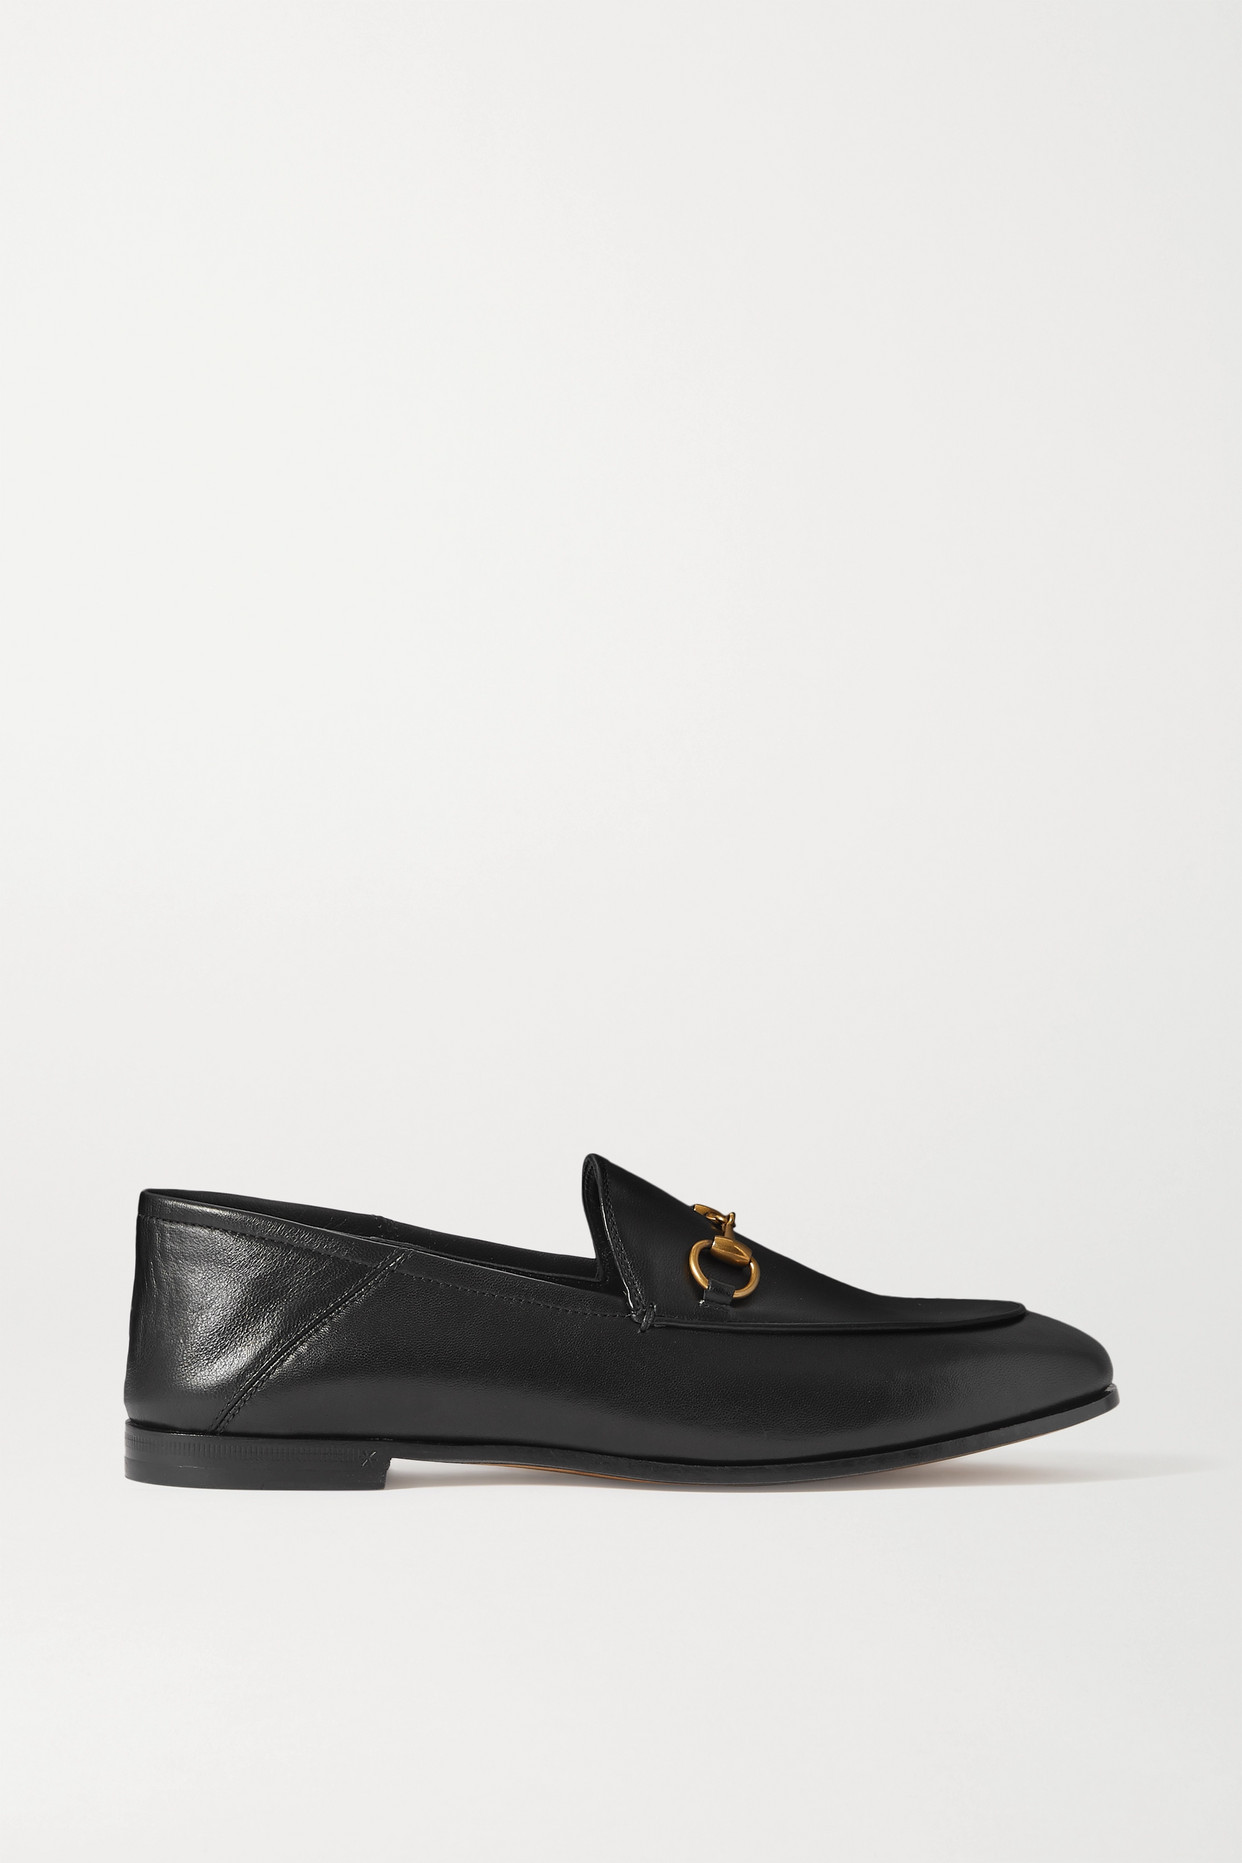 GUCCI - Brixton Horsebit-detailed Leather Collapsible-heel Loafers - Black - IT41